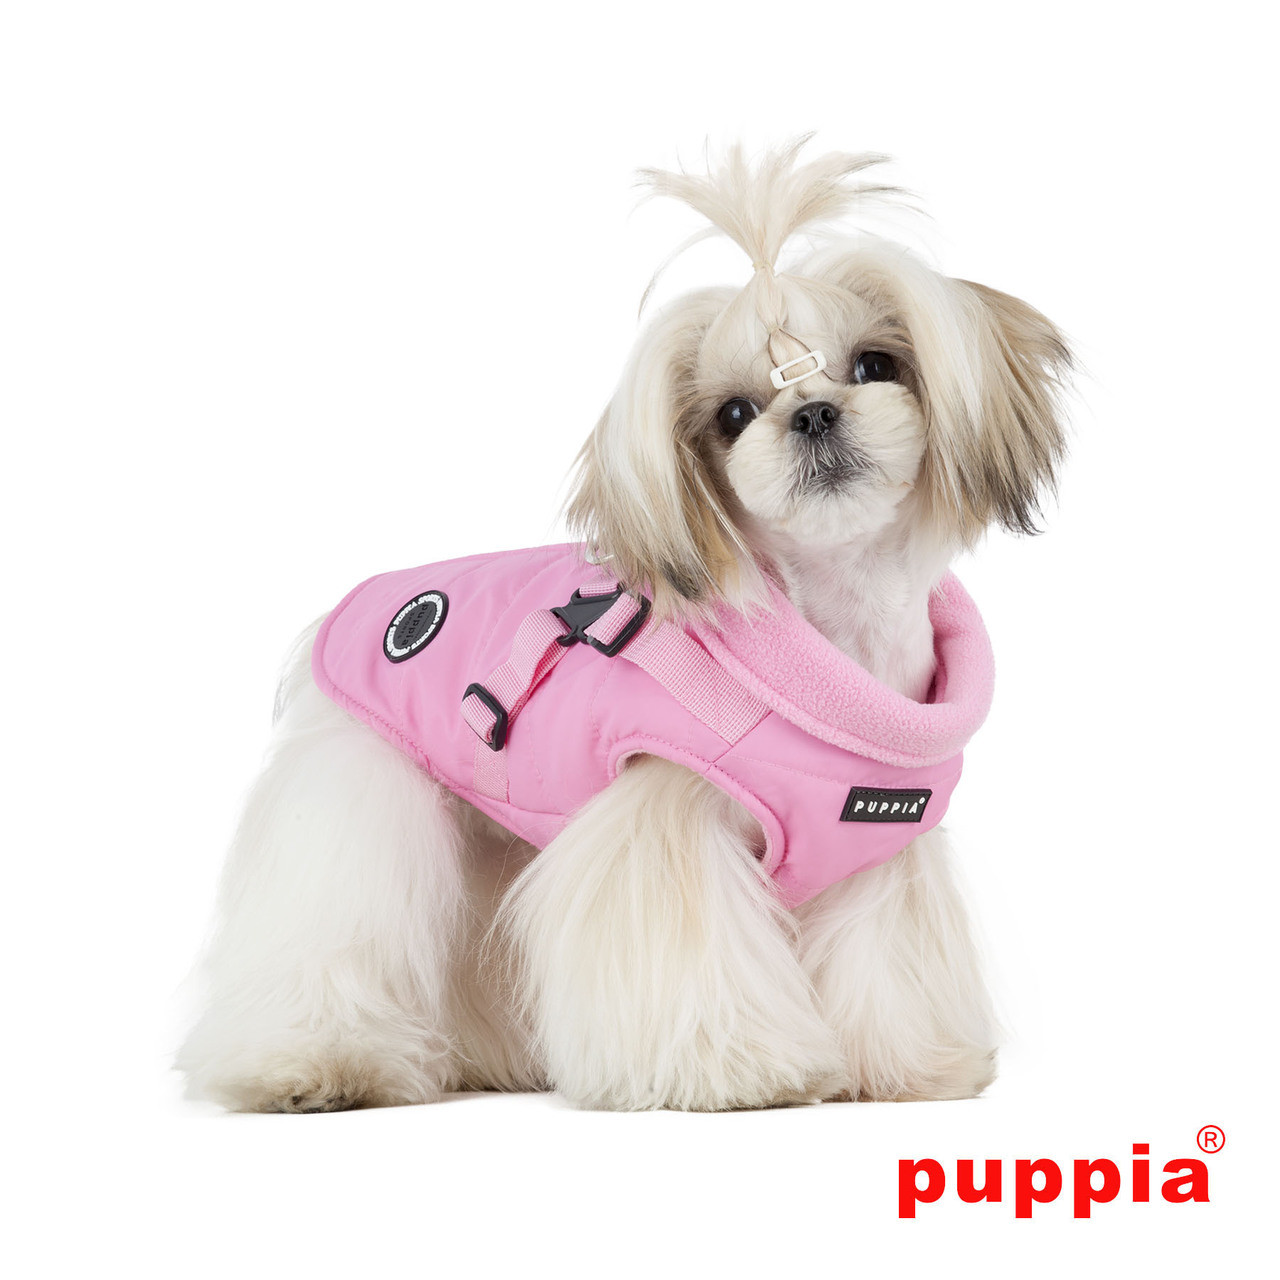 Puppia Mountaineer Coat in pink on dog model